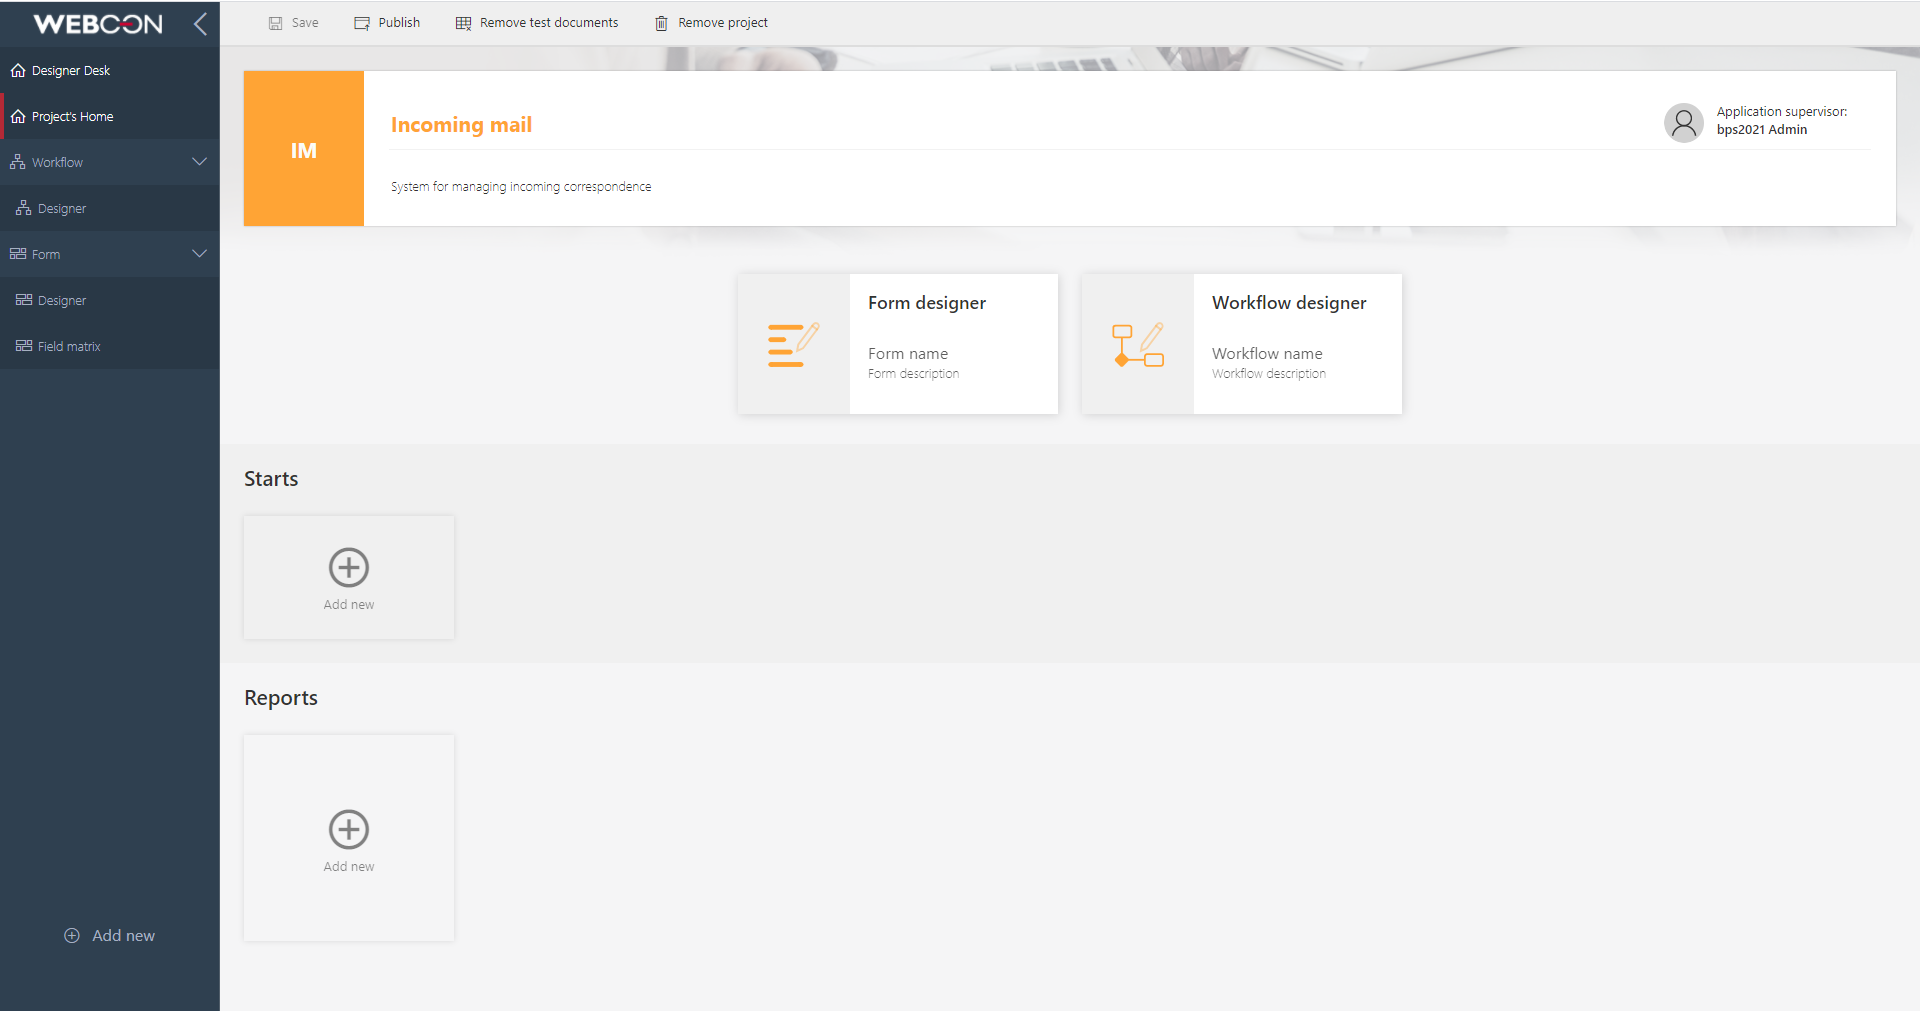 The image shows the main page of the project in Designer Desk